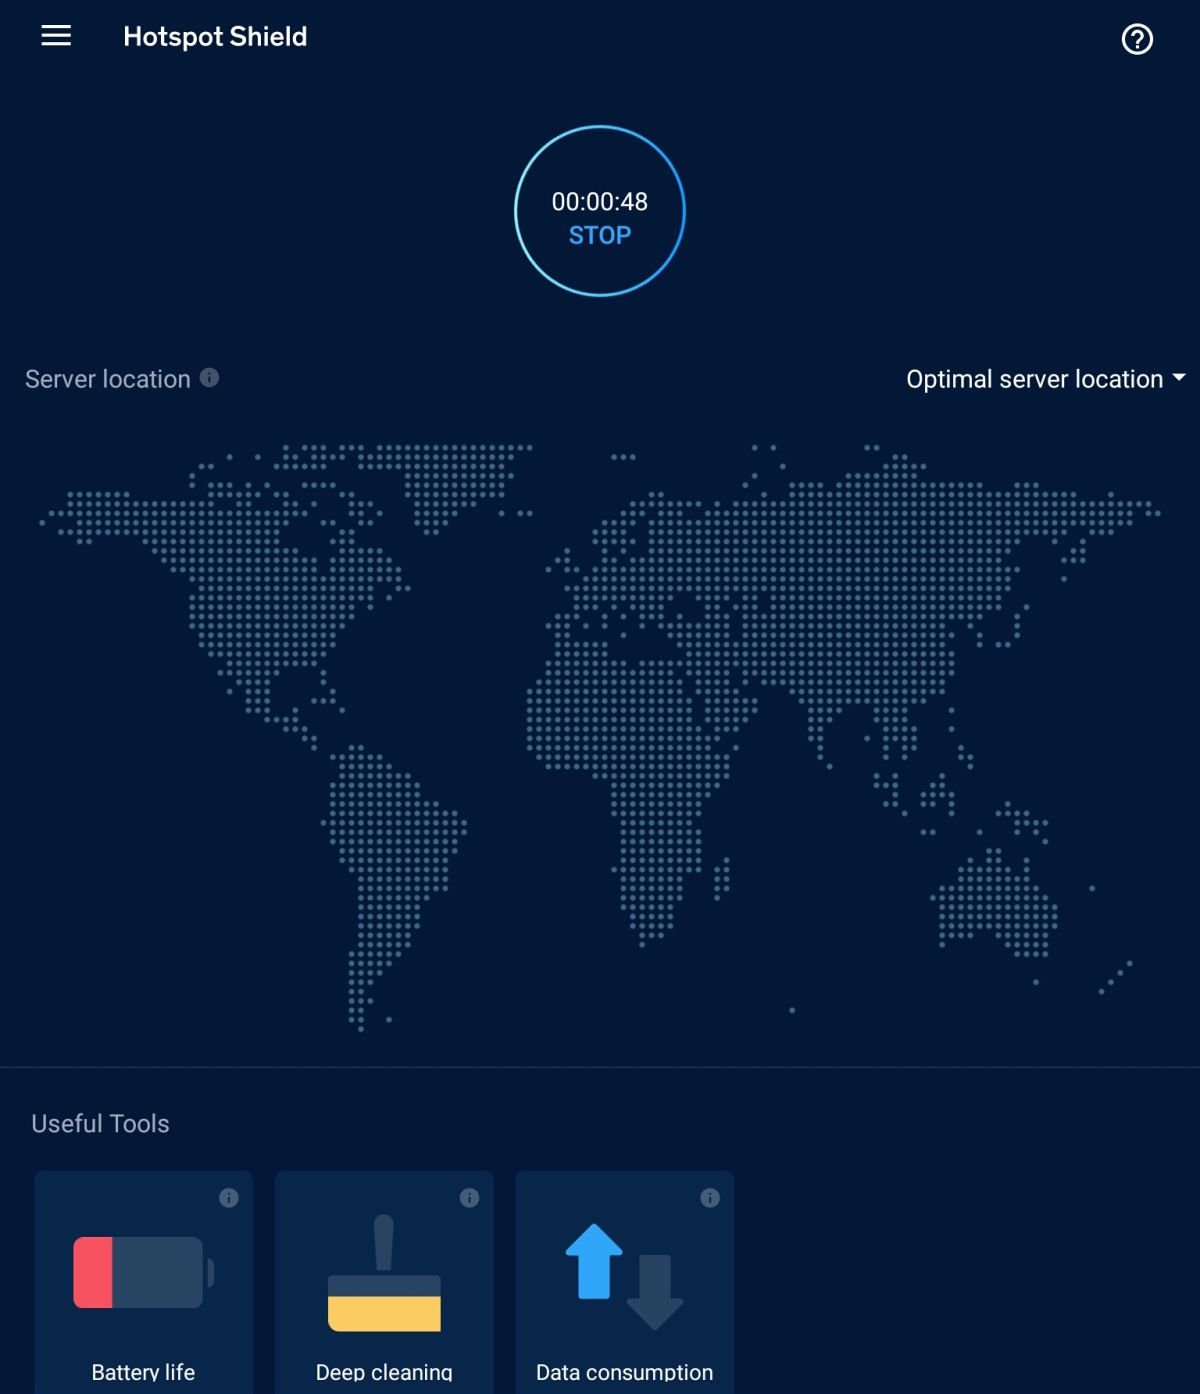 Hotspot Shield Free VPN - Full Review and Benchmarks | Tom's